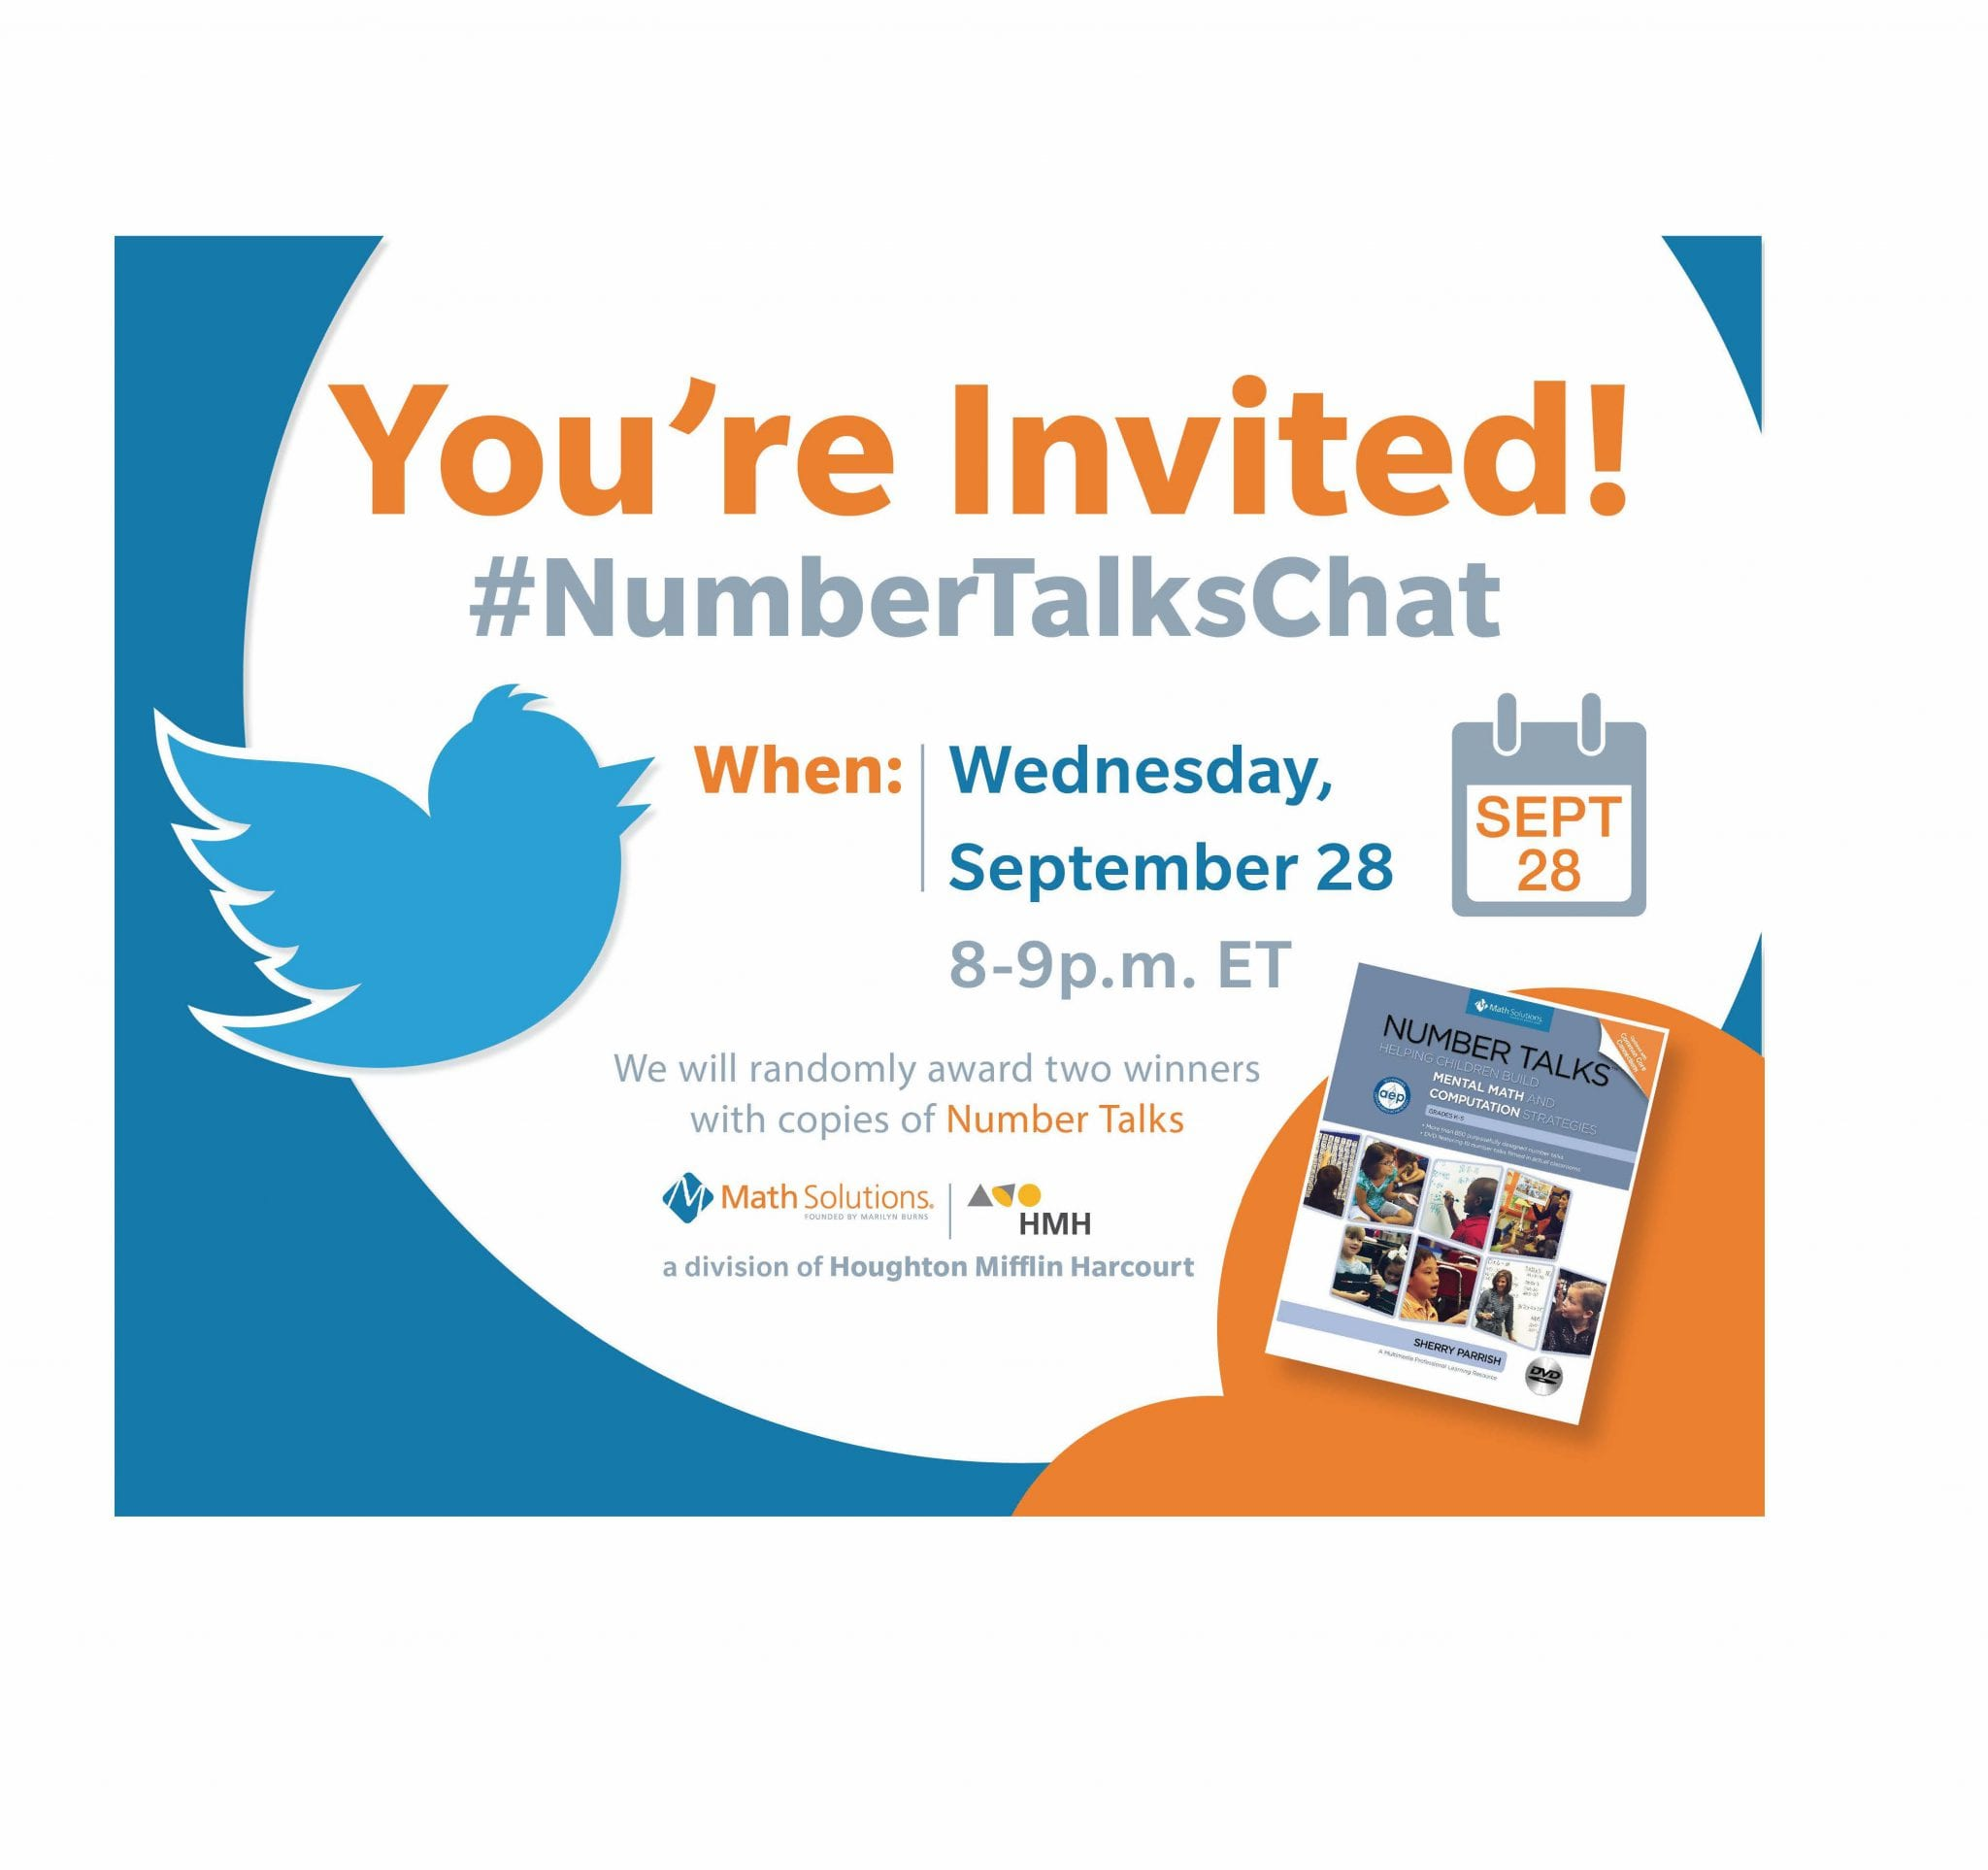 Math Solutions NumberTalks Chat invite, image of twitter bird and a copy of a Number Talks book cover | You're invited! #Numbertalkschat Wednesday September 28, 2016